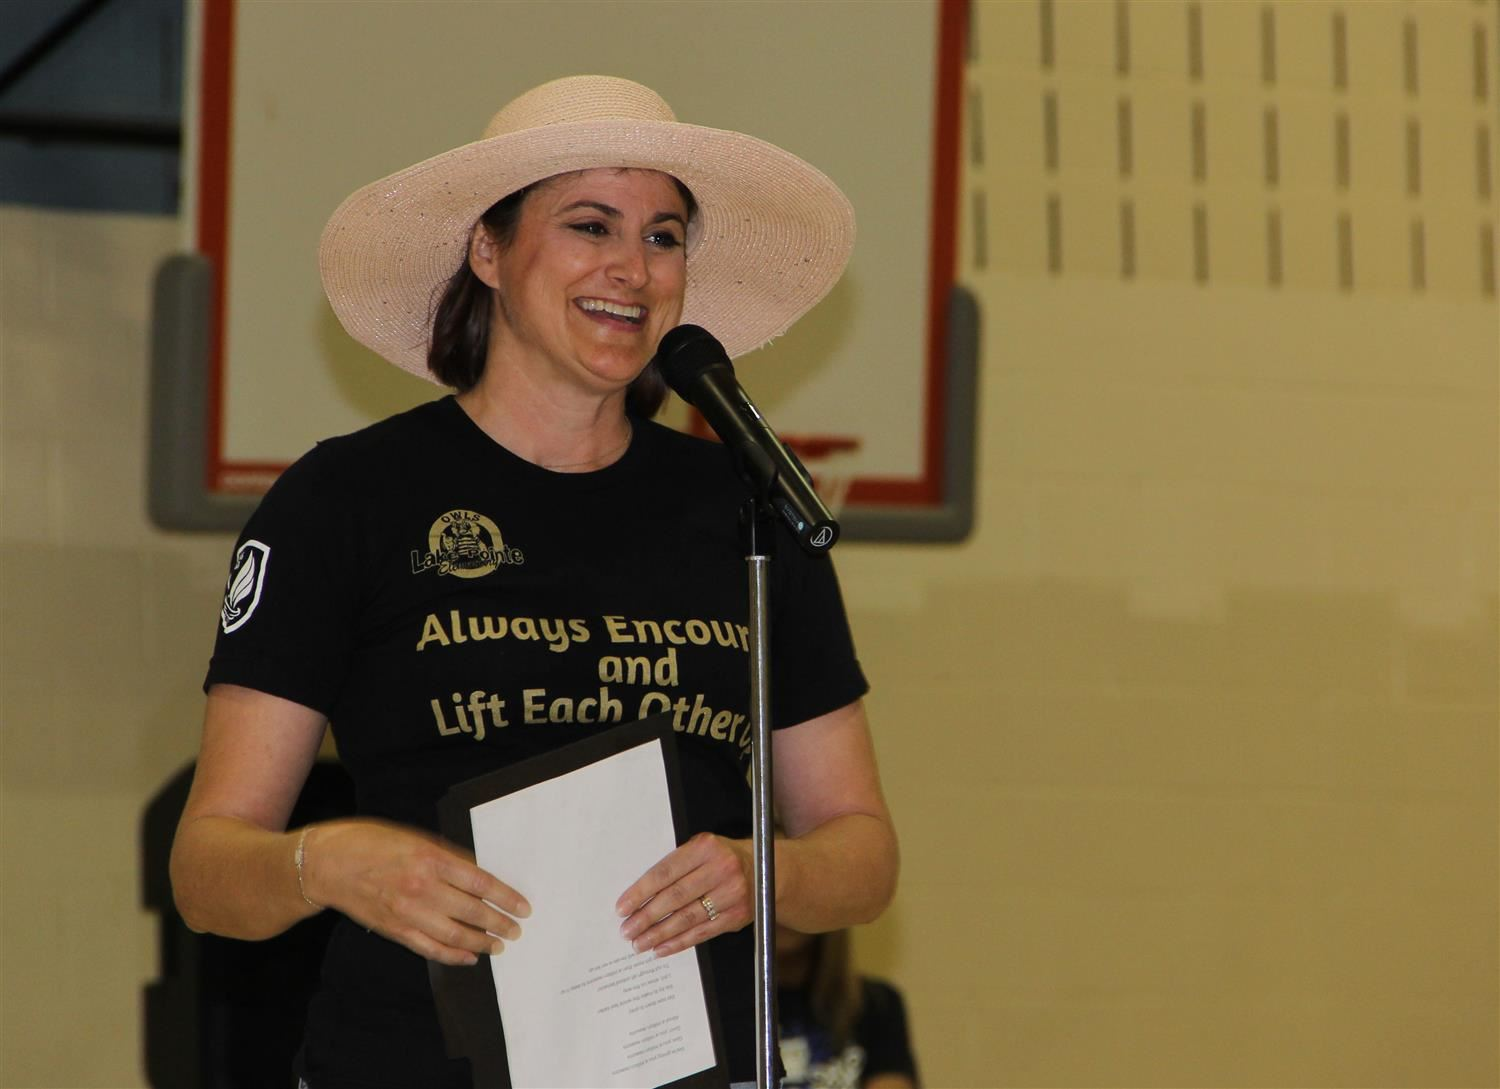 Staff member wears a hat and smiles in front of a microphone